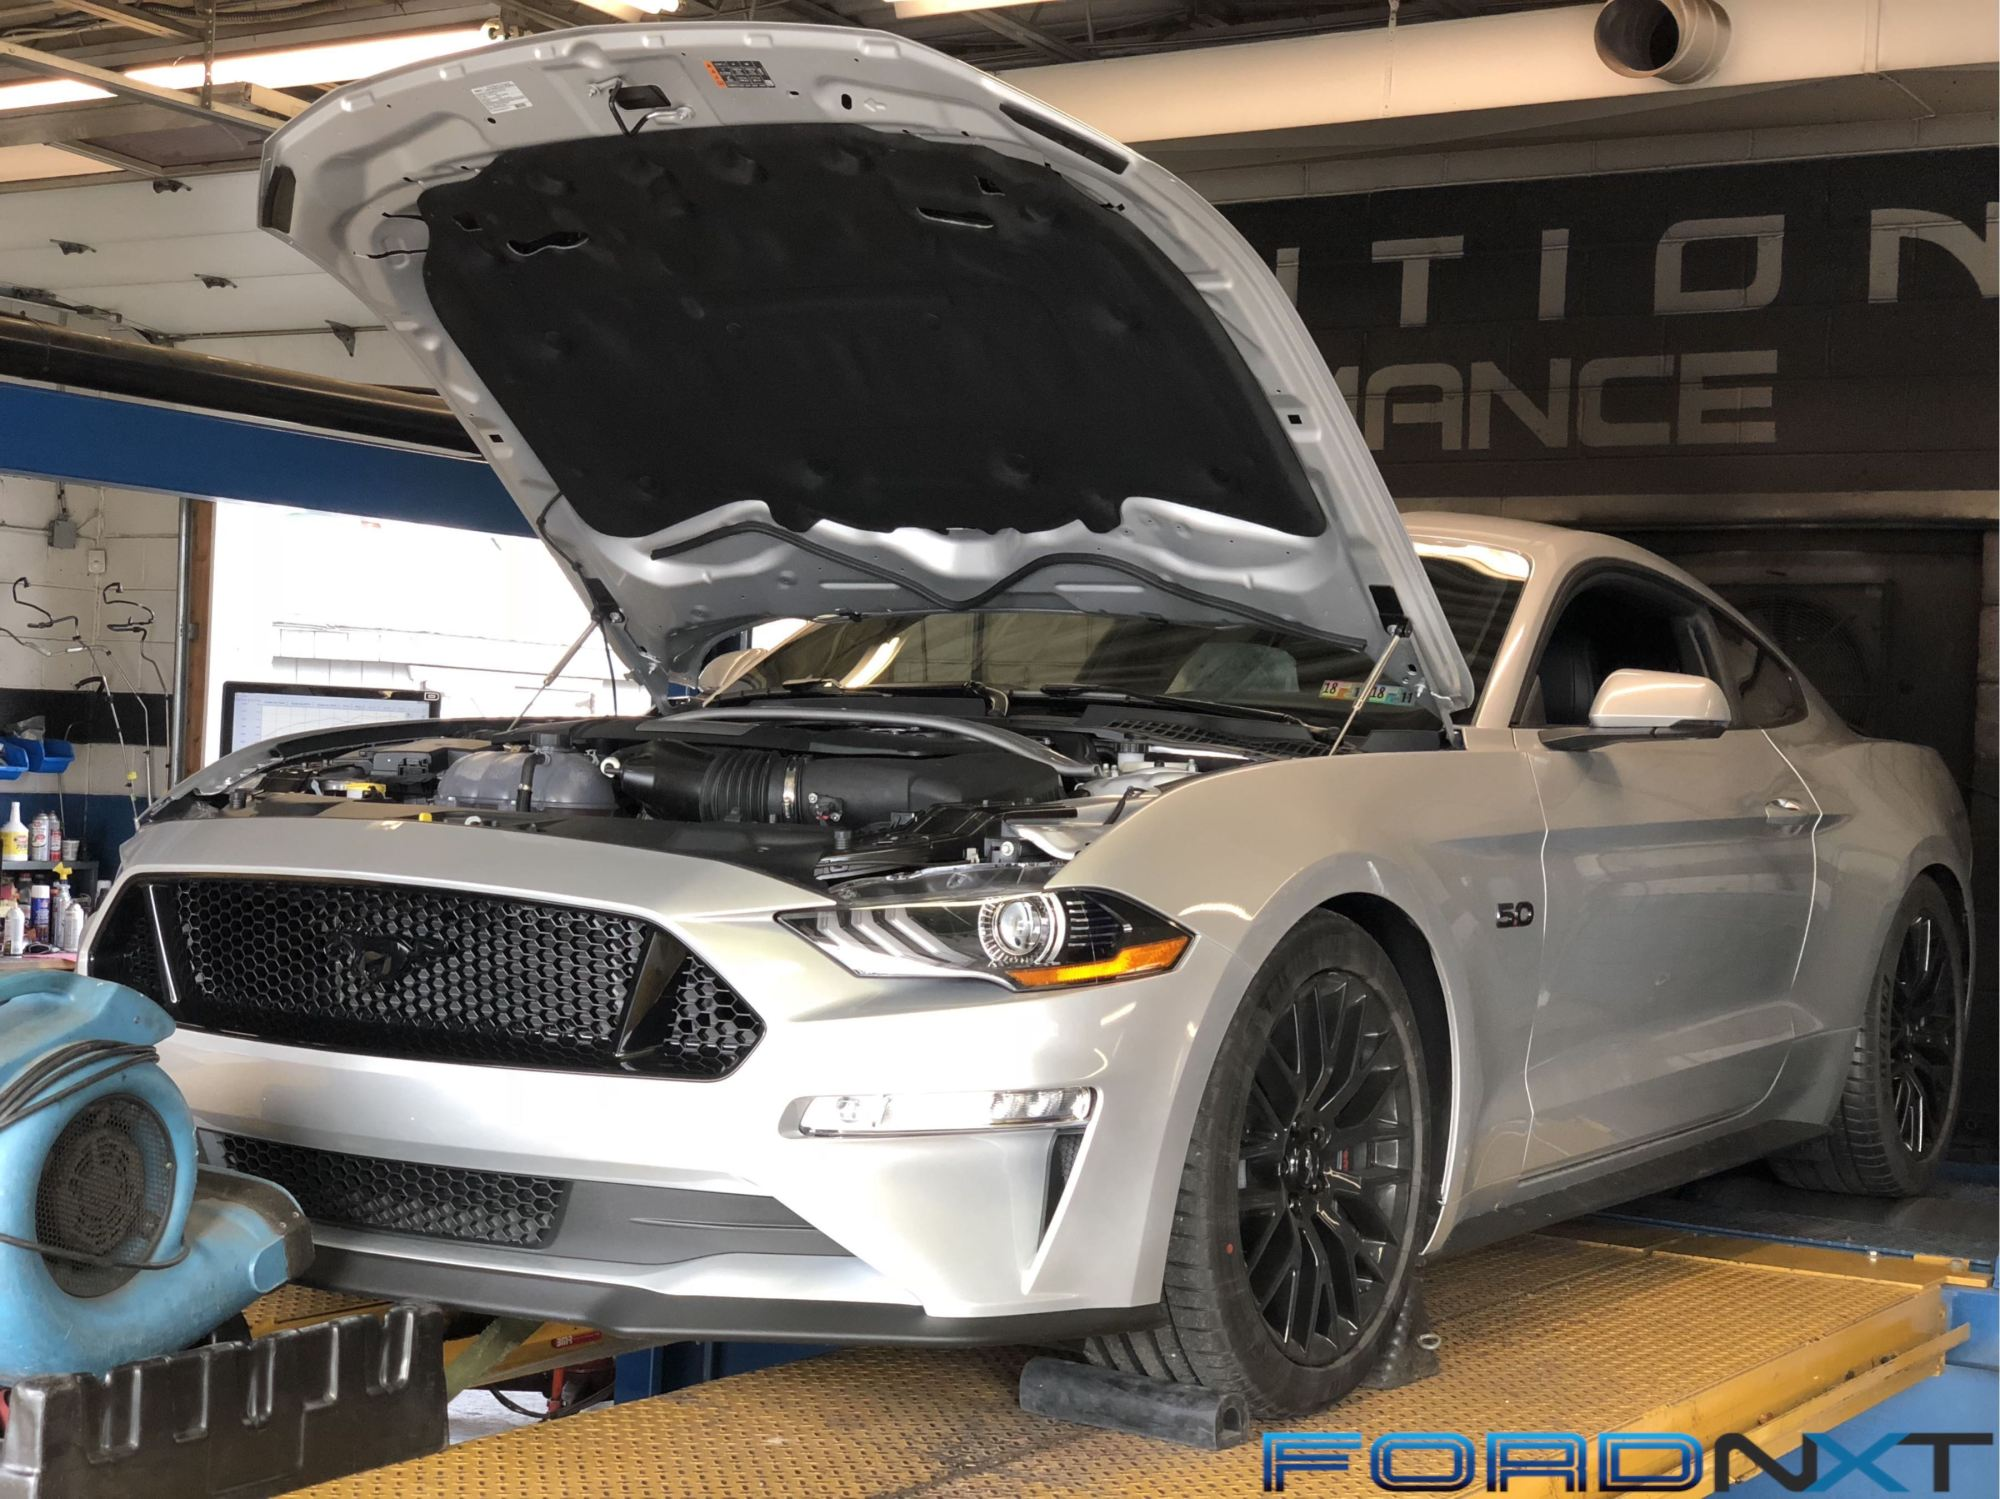 hight resolution of bolt on na 2018 mustang blasts out over 500 rwhp engine